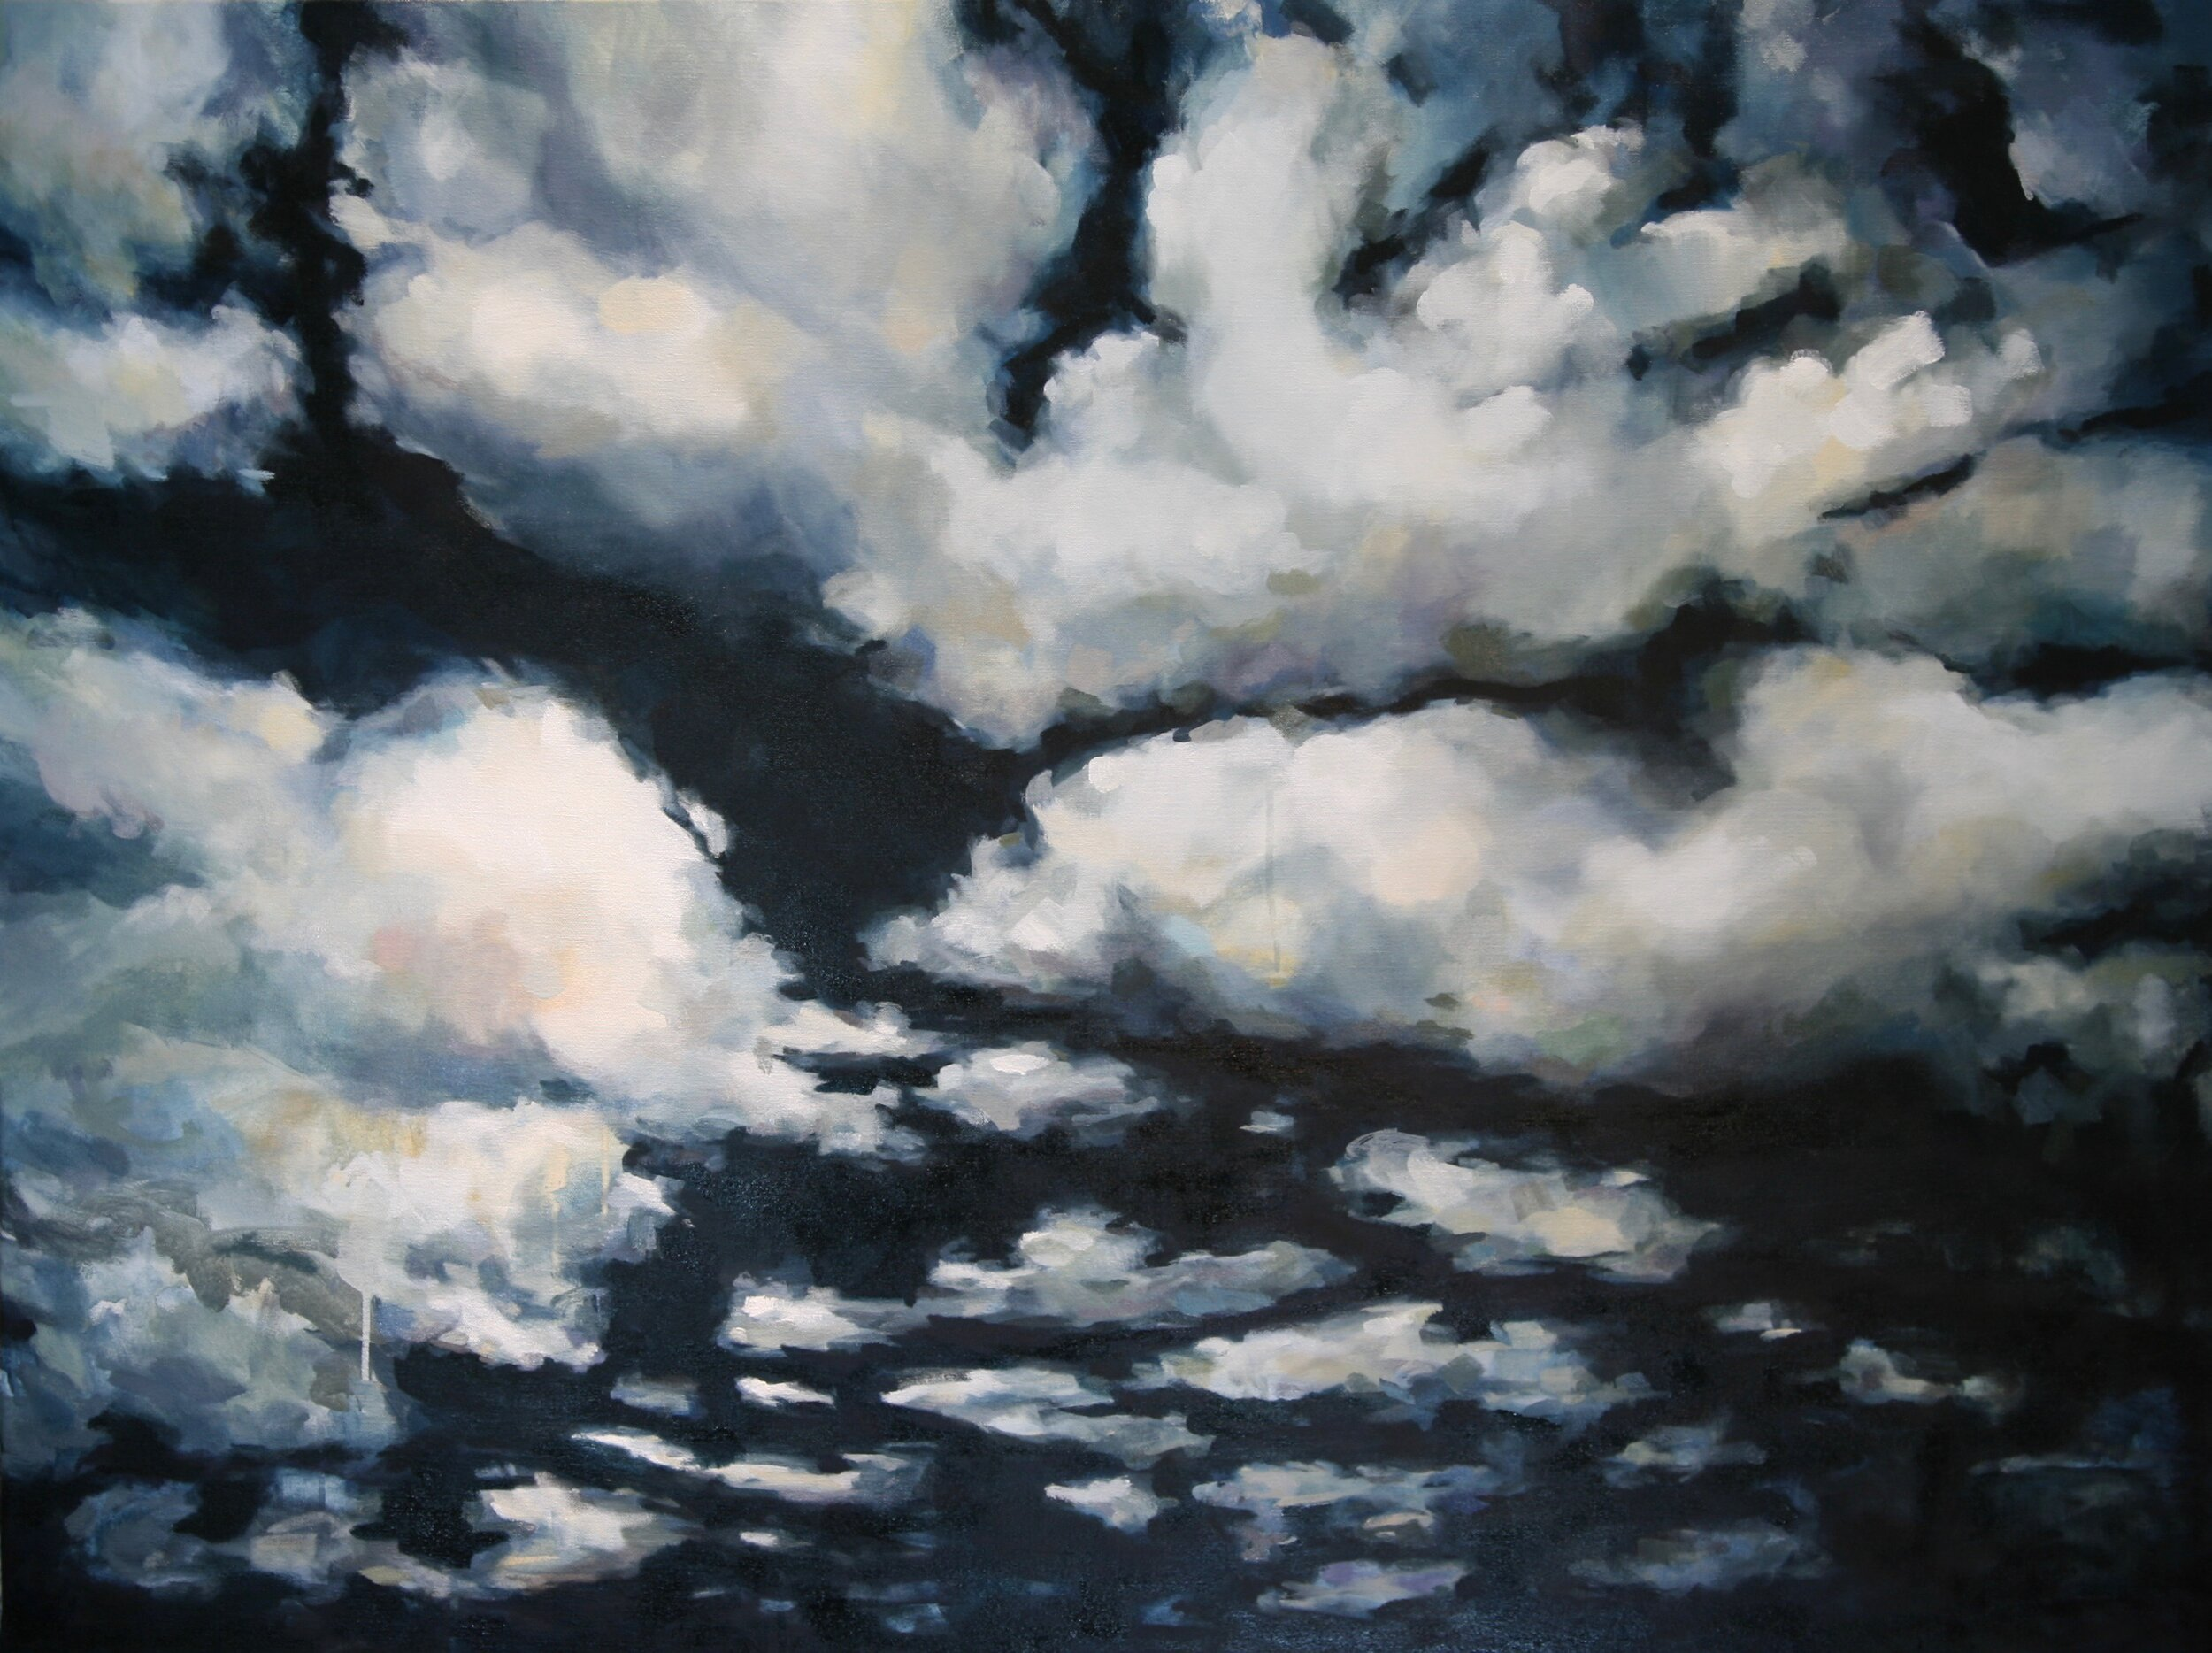 """'Night Clouds II'  2017  48"""" x 36""""  water soluble oil on canvas  sold"""